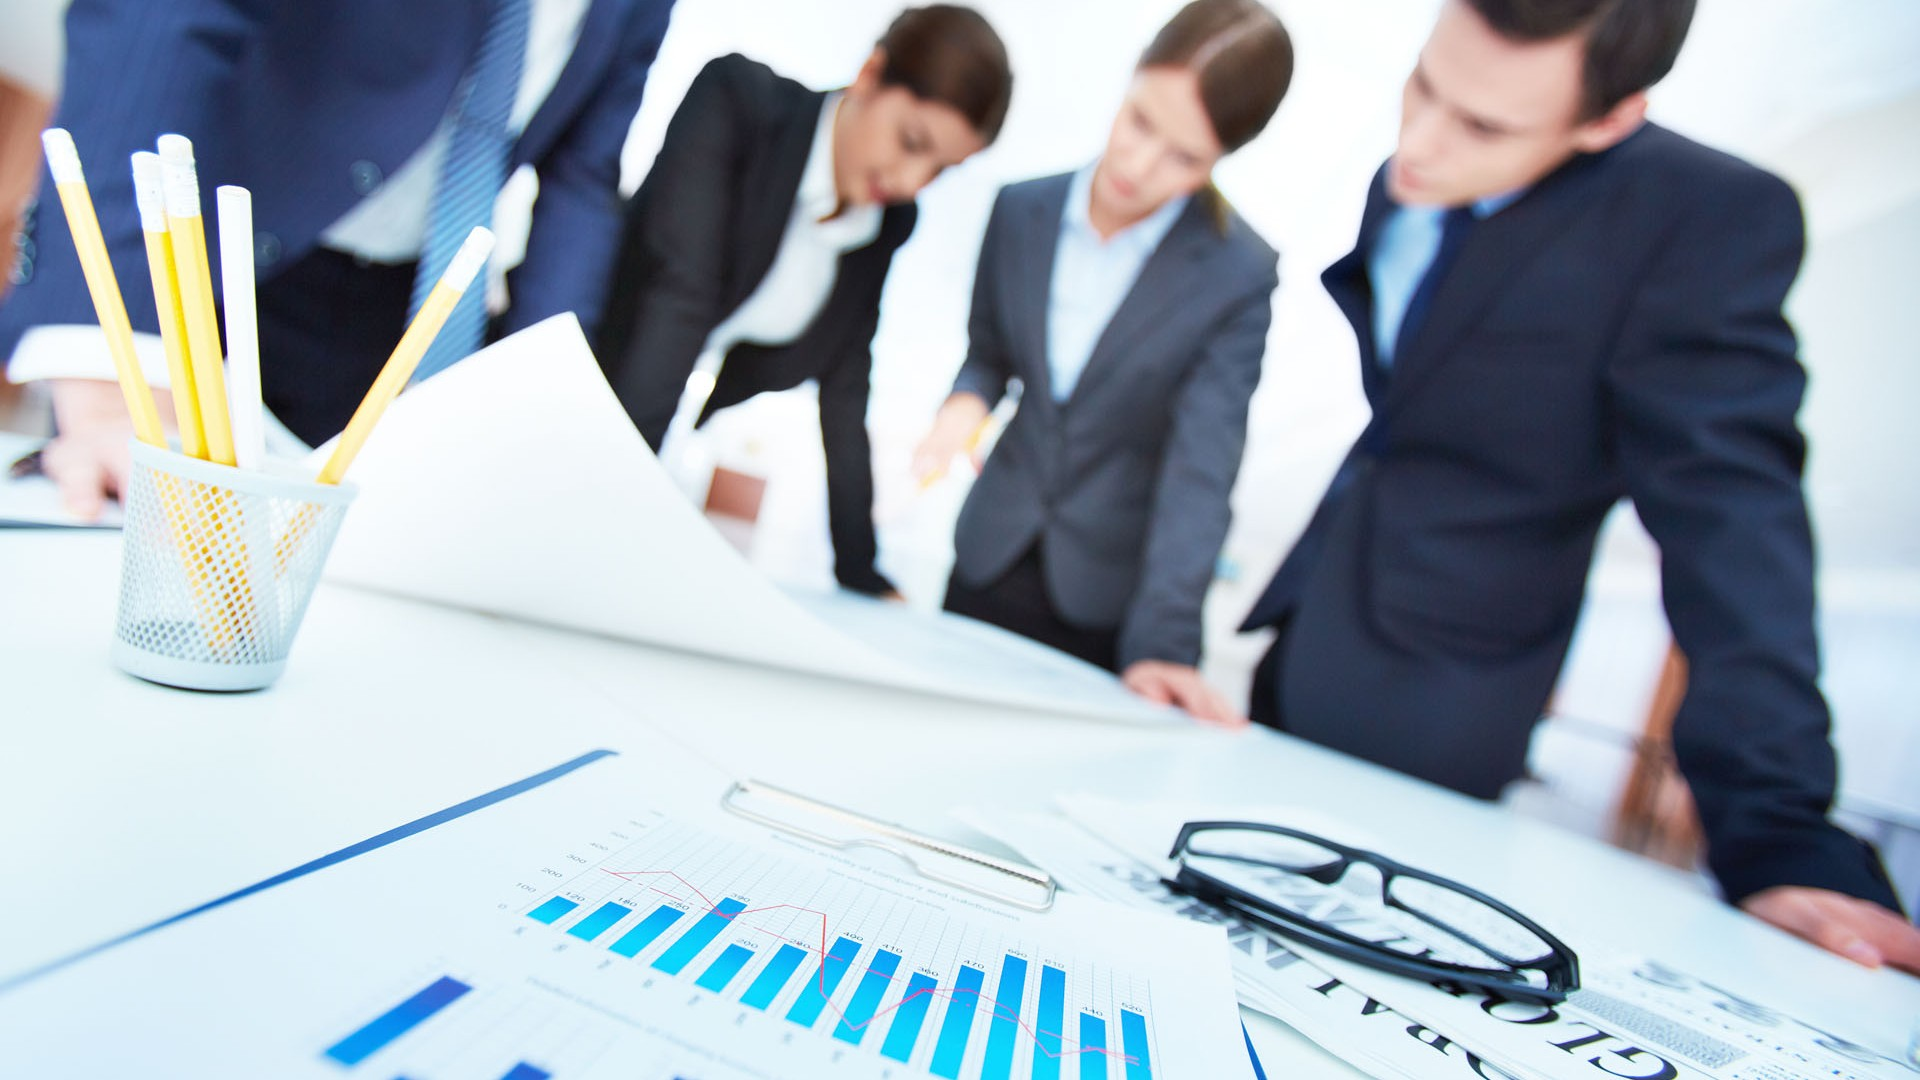 Standard Auditors | Auditing, Accounting, VAT Services in Dubai, UAE